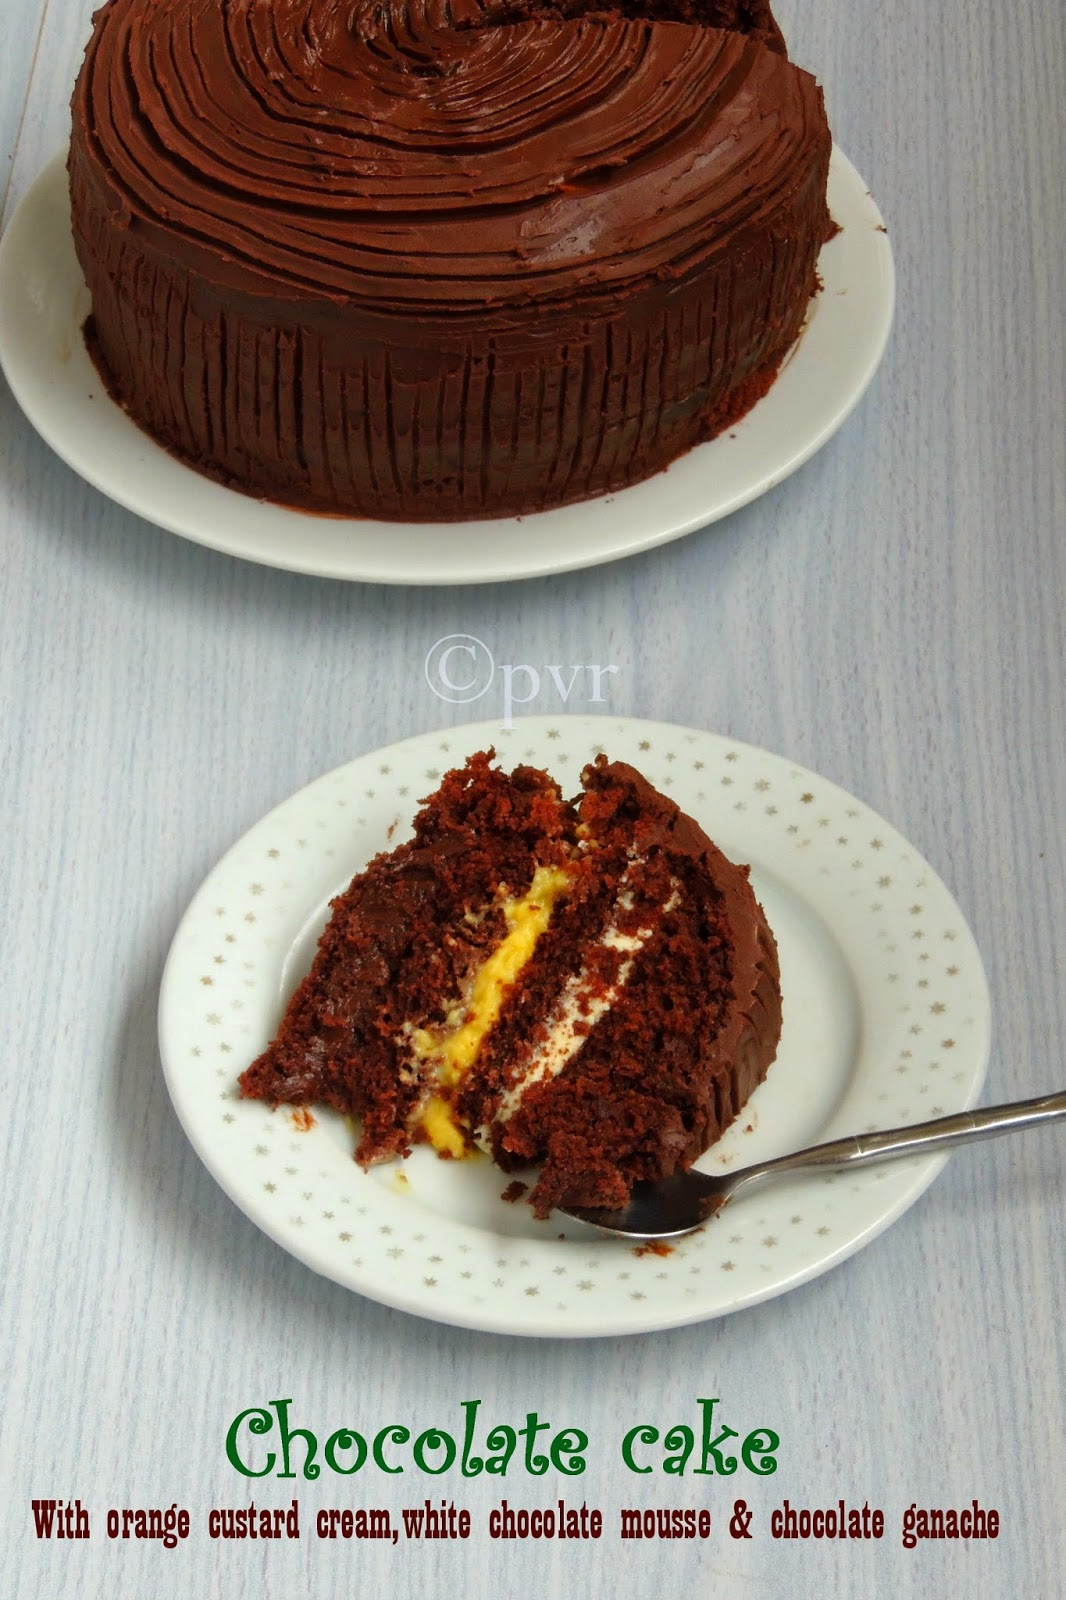 Chocolate Cake with Eggless Orange Custard Cream, Eggless White Chocolate Mousse and Chocolate Ganache